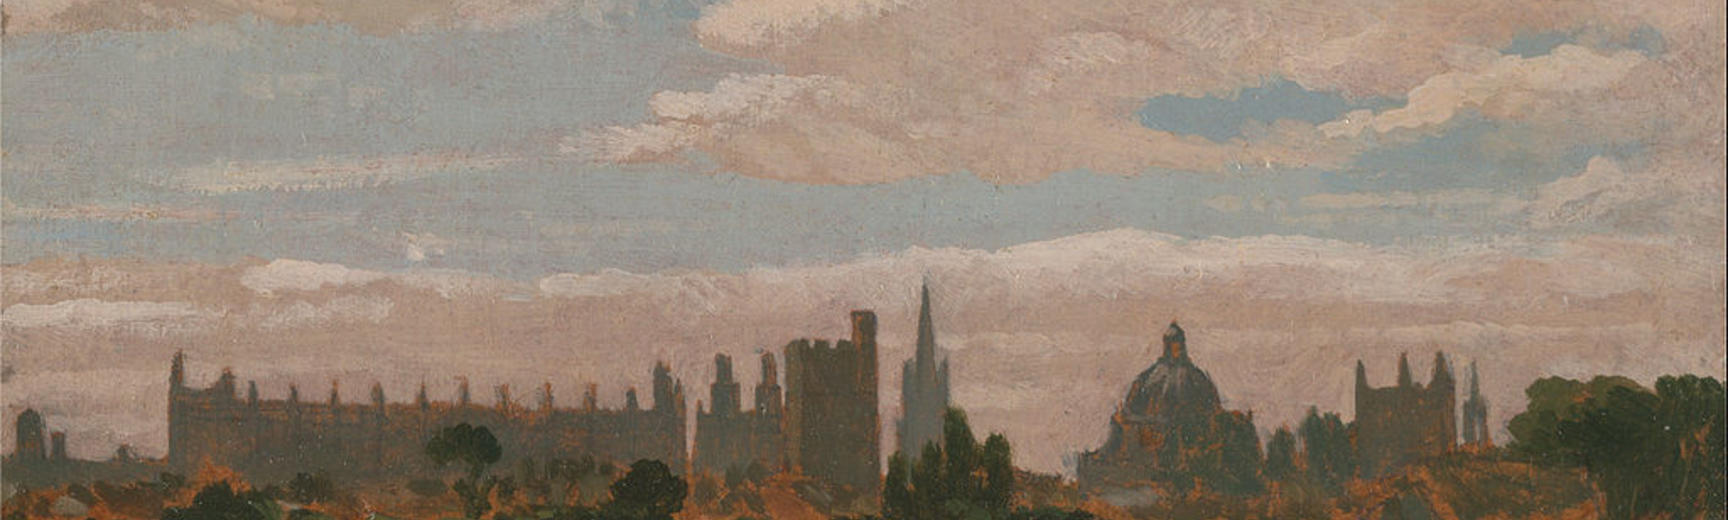 1024px william turner of oxford  a view of oxford  google art project